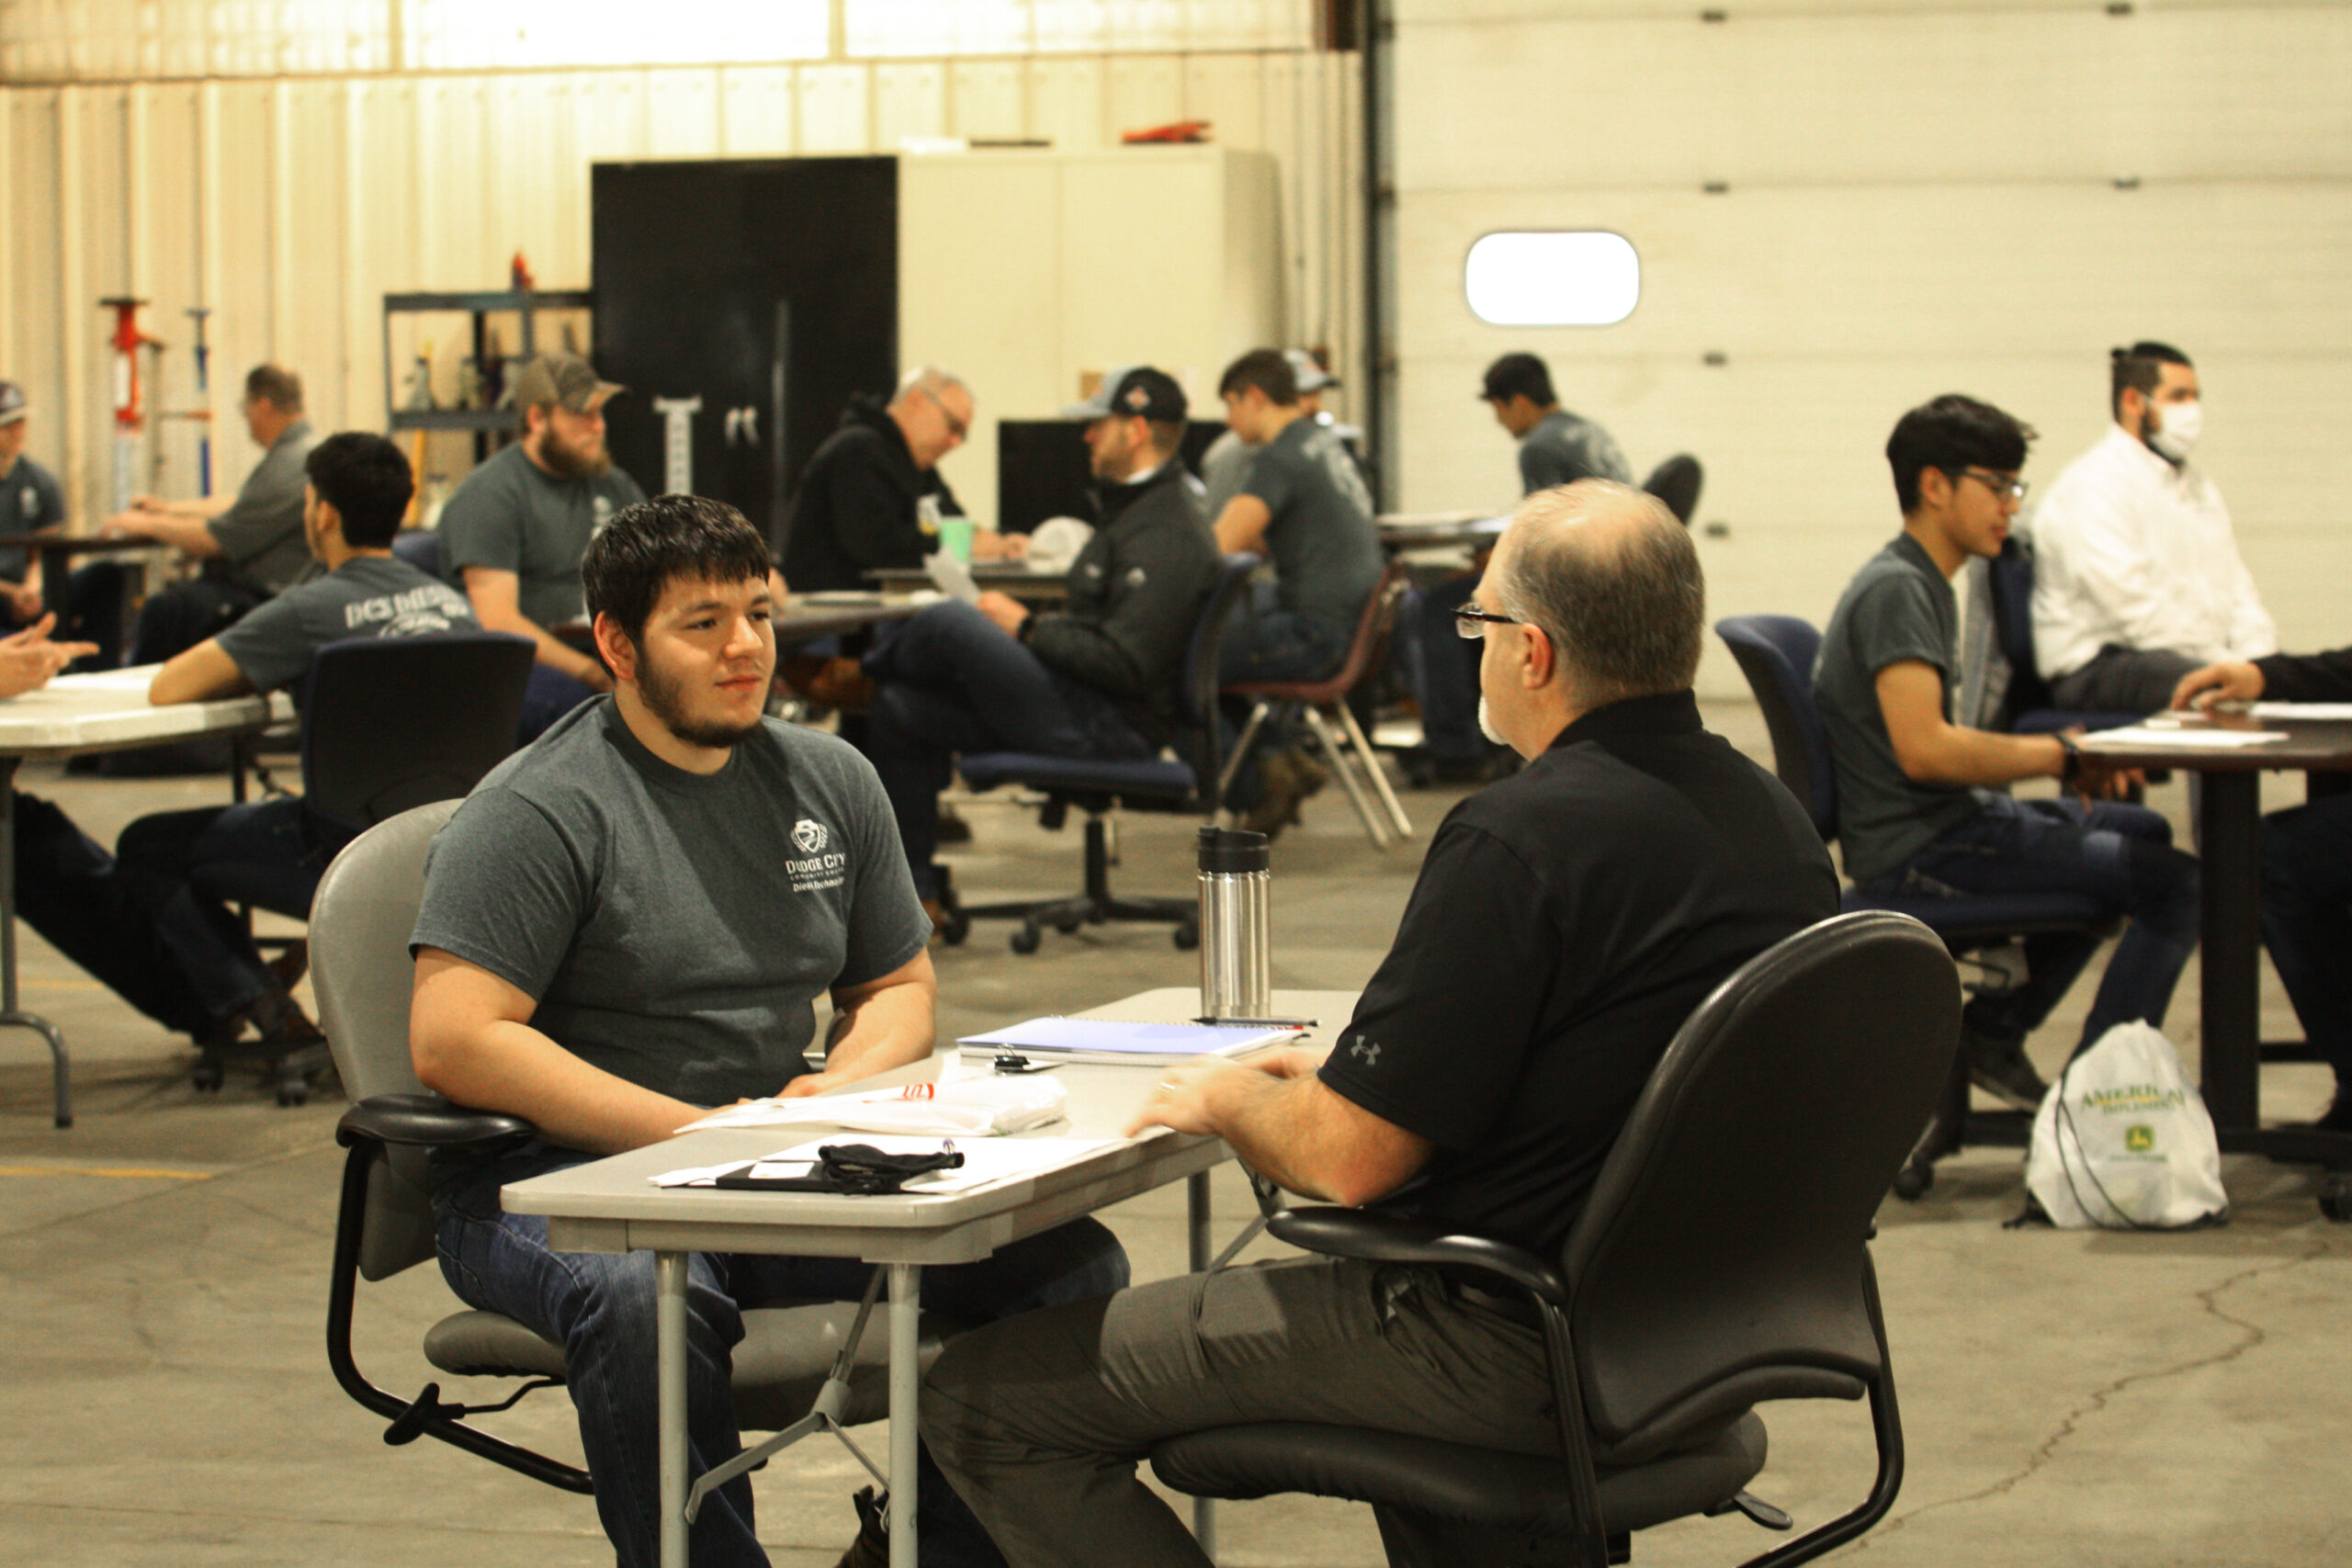 DC3 diesel tech students meet with recruiters during the college's Reverse Career Fair on Wednesday, March 24. [Photo by Justin Wilson]